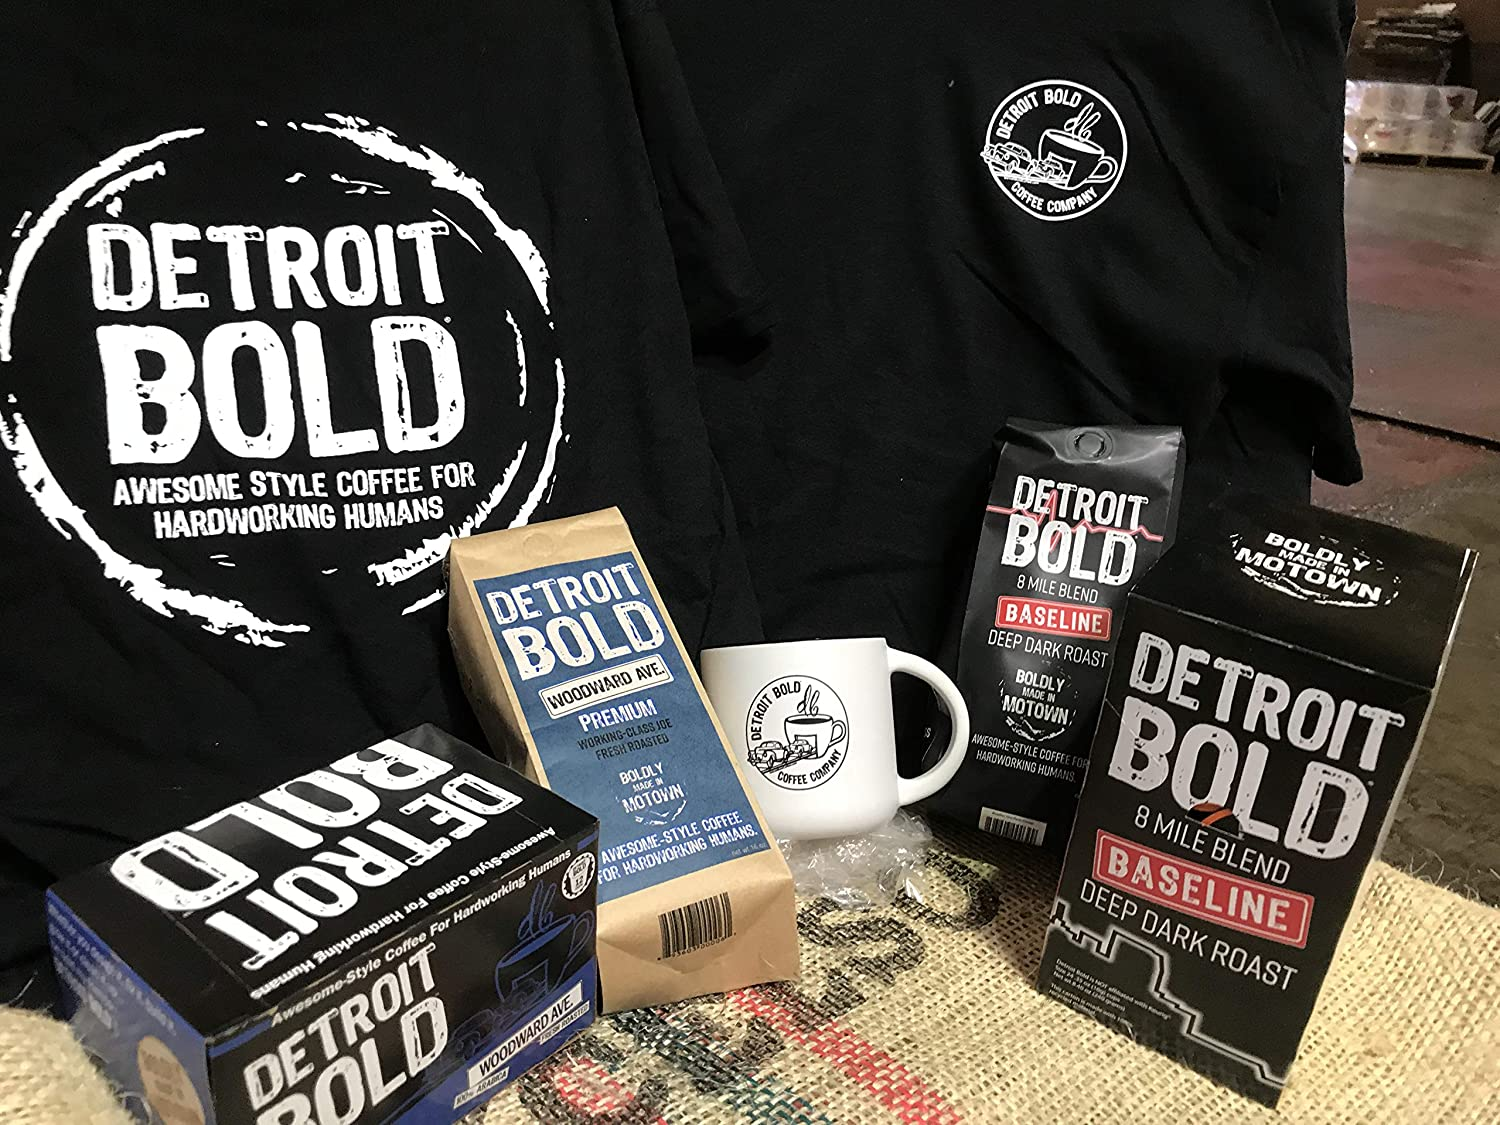 ULTIMATE COFFEE DRINKER GIFT SET - Two 16oz Bags Ground Coffee, Two K-Cup Style Boxes, Detroit Bold T-Shirt, Detroit Bold Coffee Mugs, Perfect Office Gift, Holiday Gift, Christmas Gift, Birthday Gift